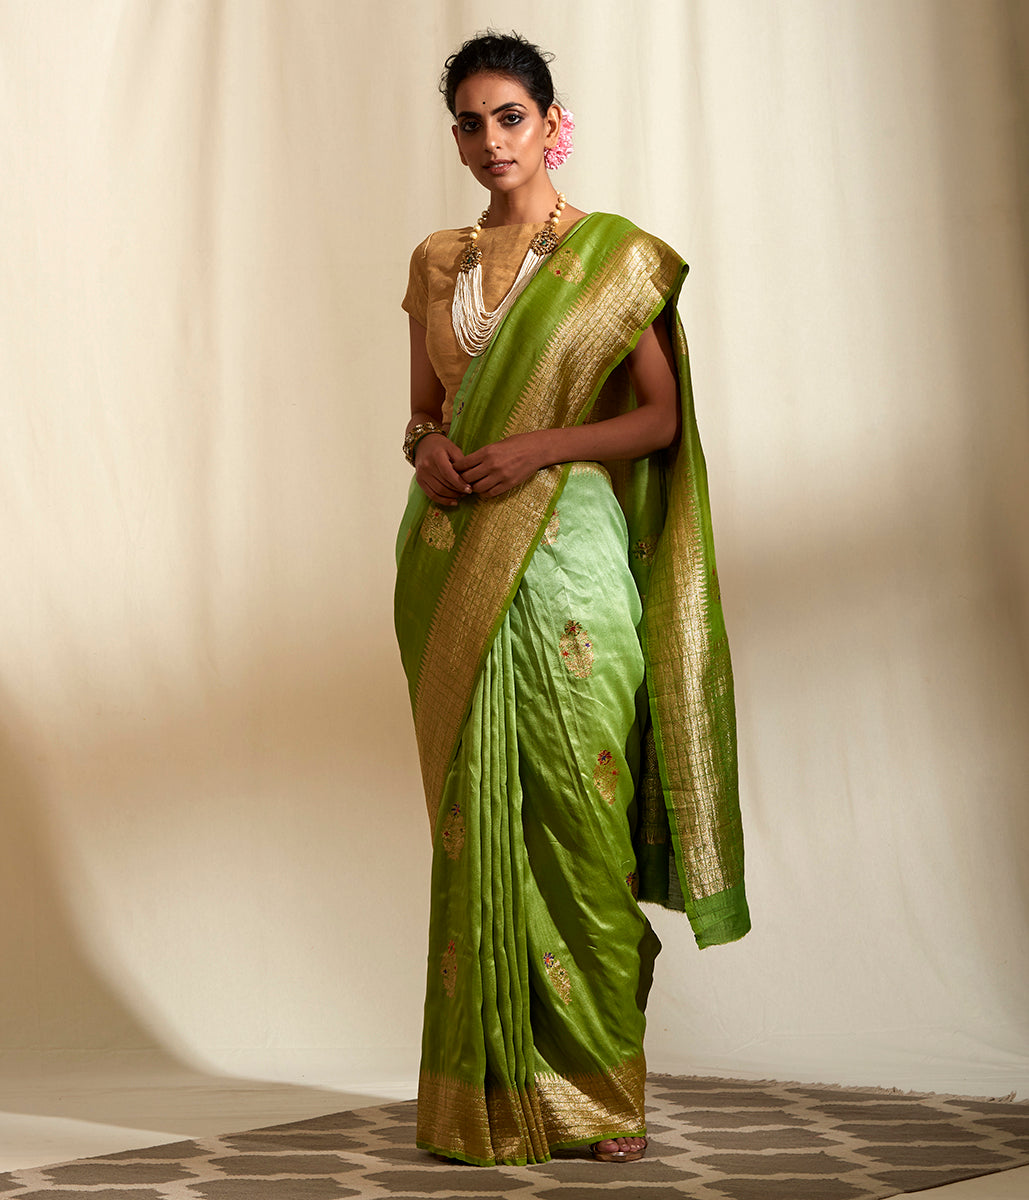 Handwoven Tusser Georgette Saree with Meenakari booti